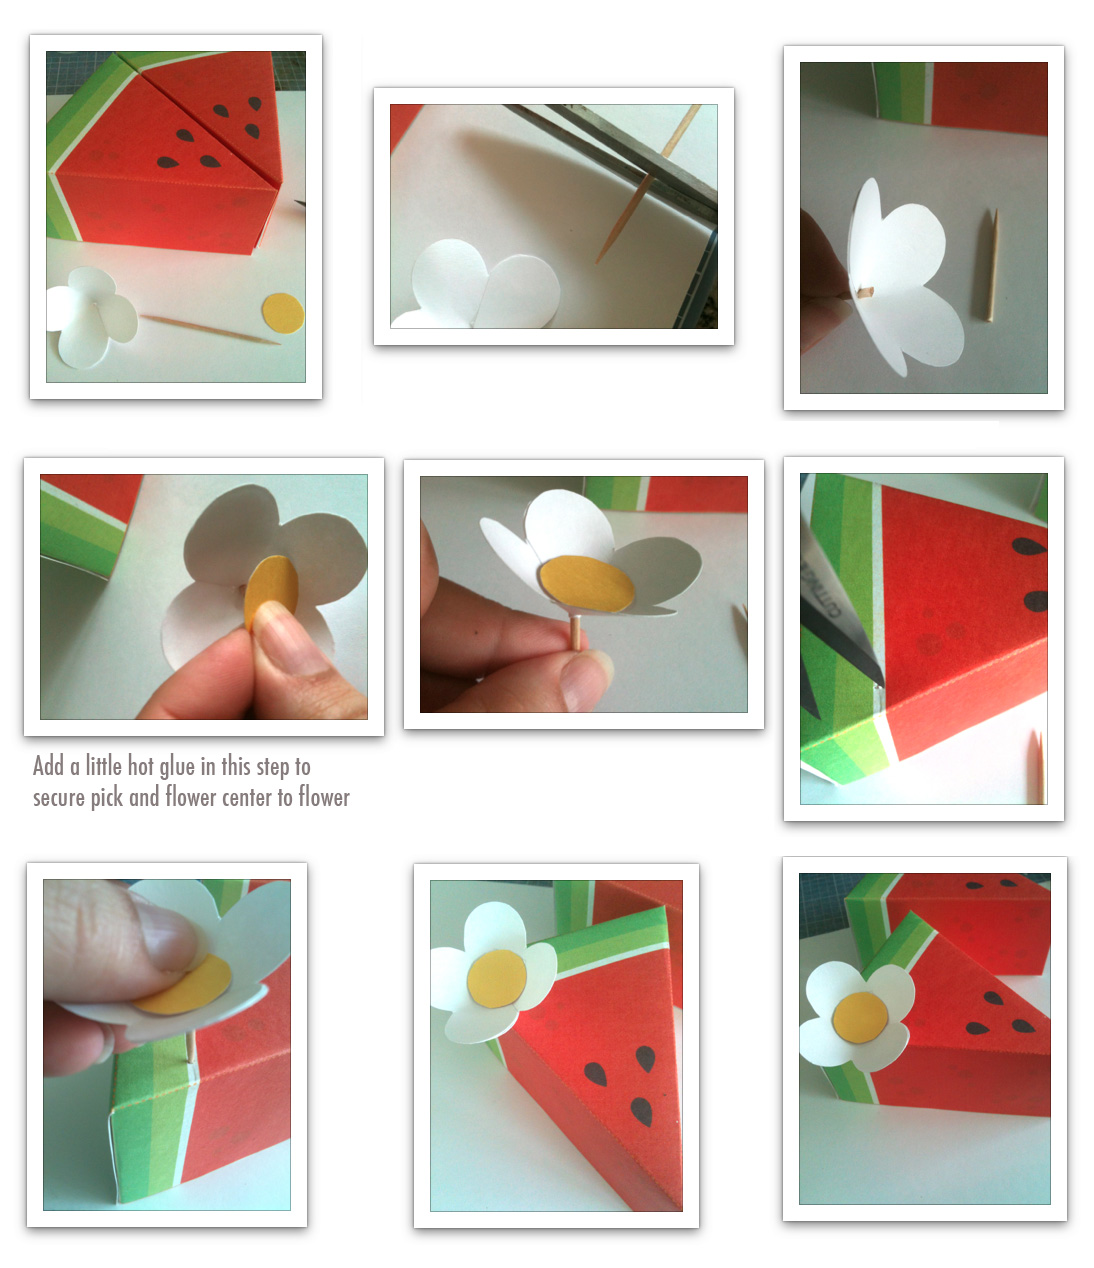 Real parties watermelon party by little things creations for How to make paper things easy step by step